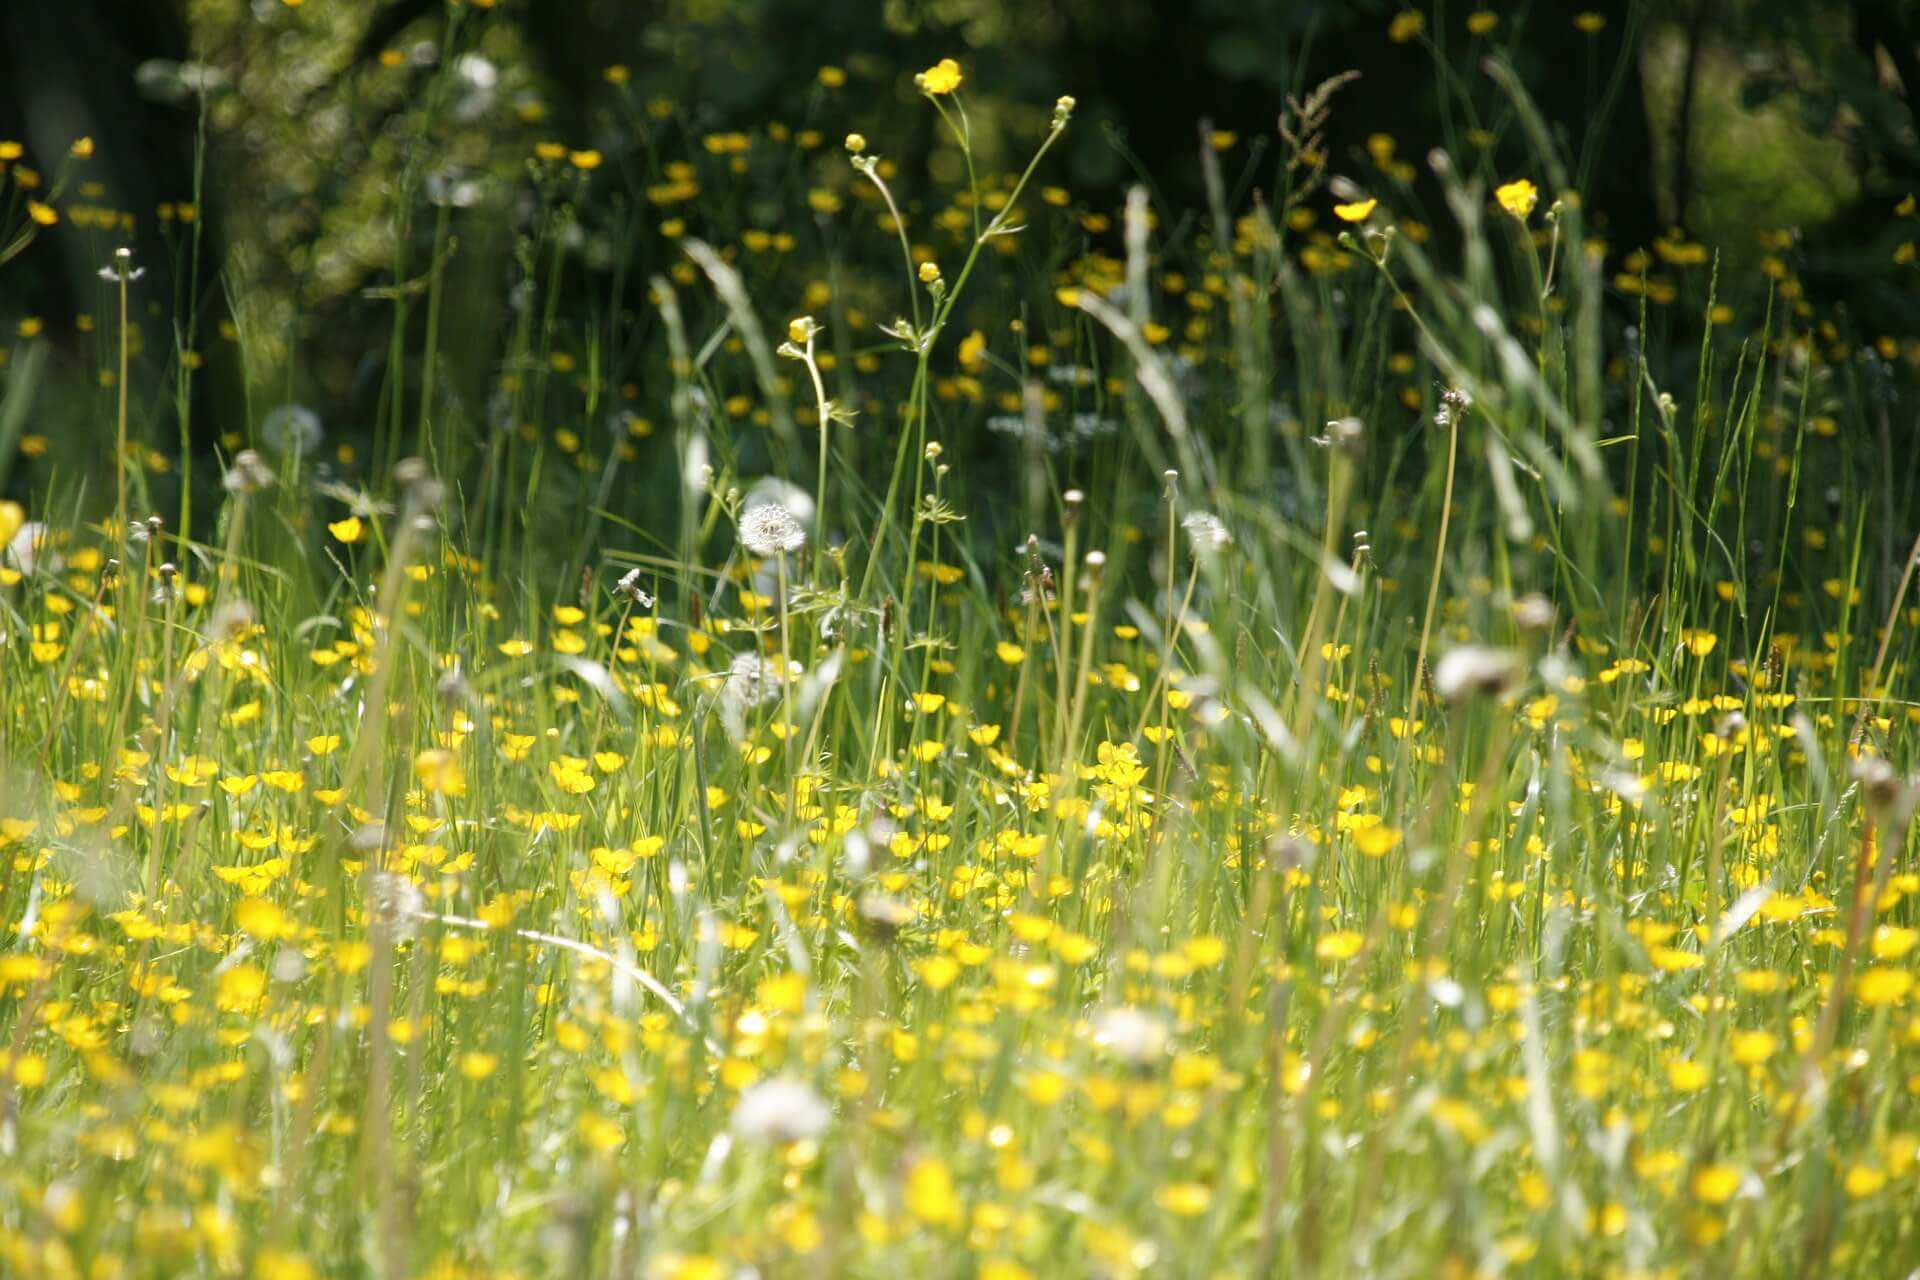 WHAT CAUSES HAY FEVER?